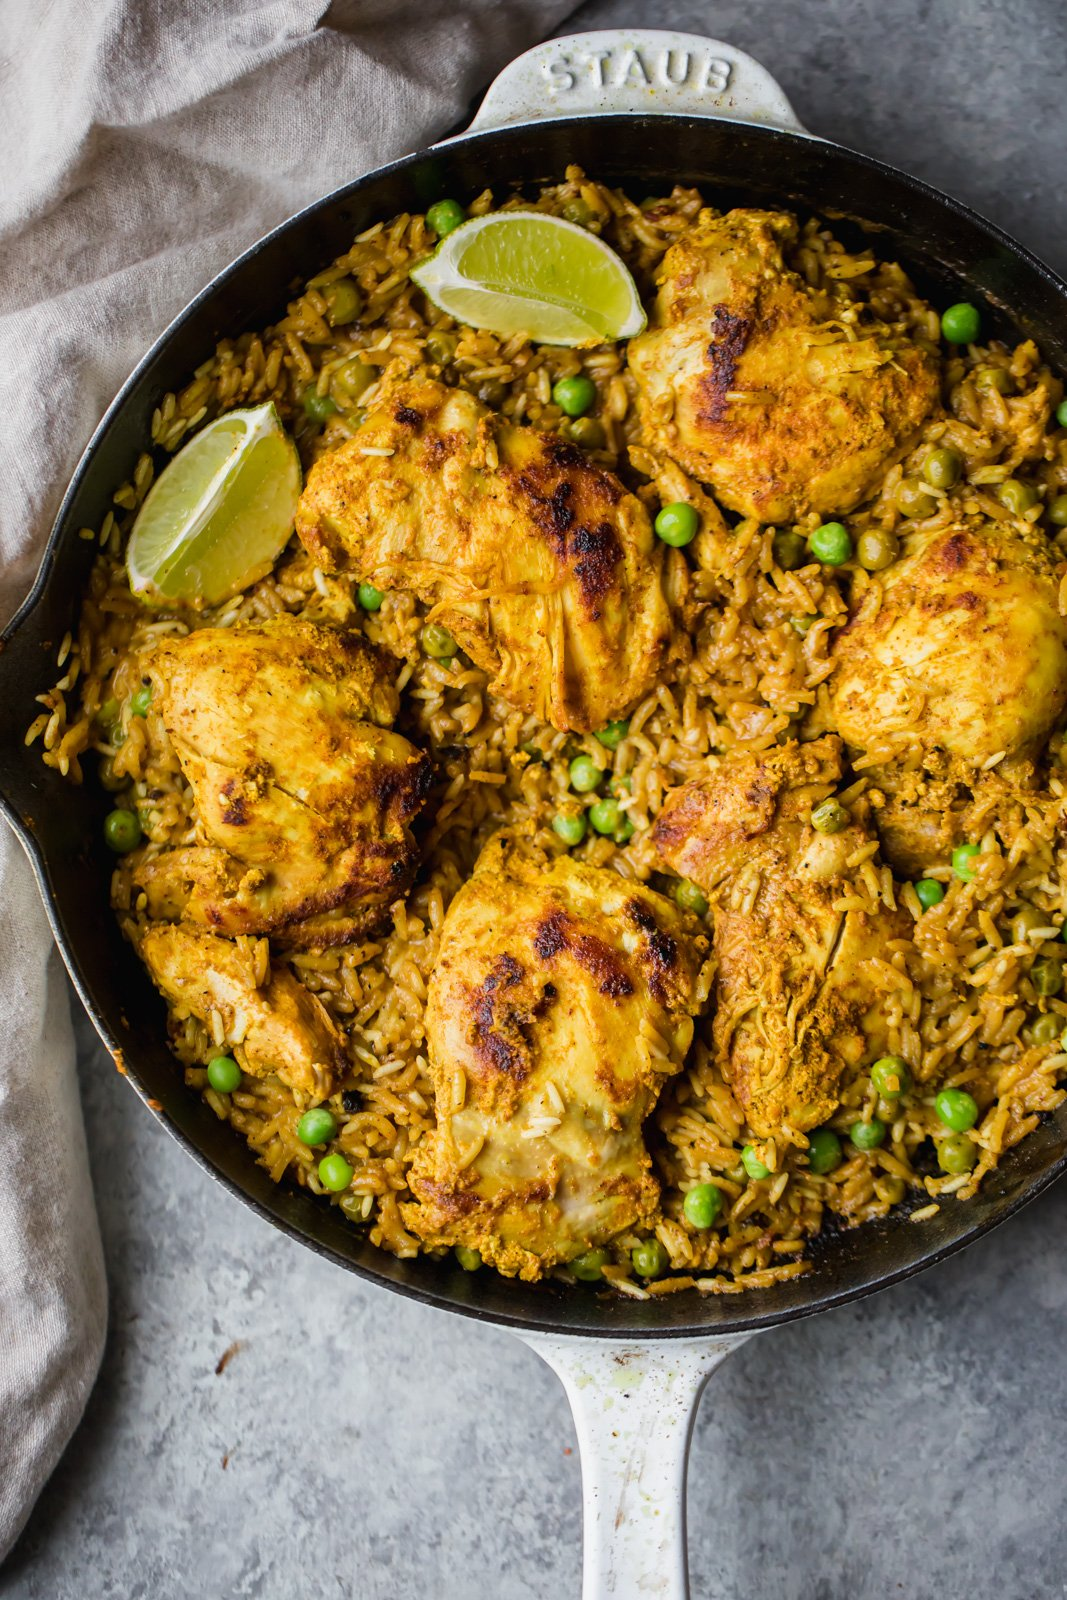 Tandoori chicken with rice in a pan